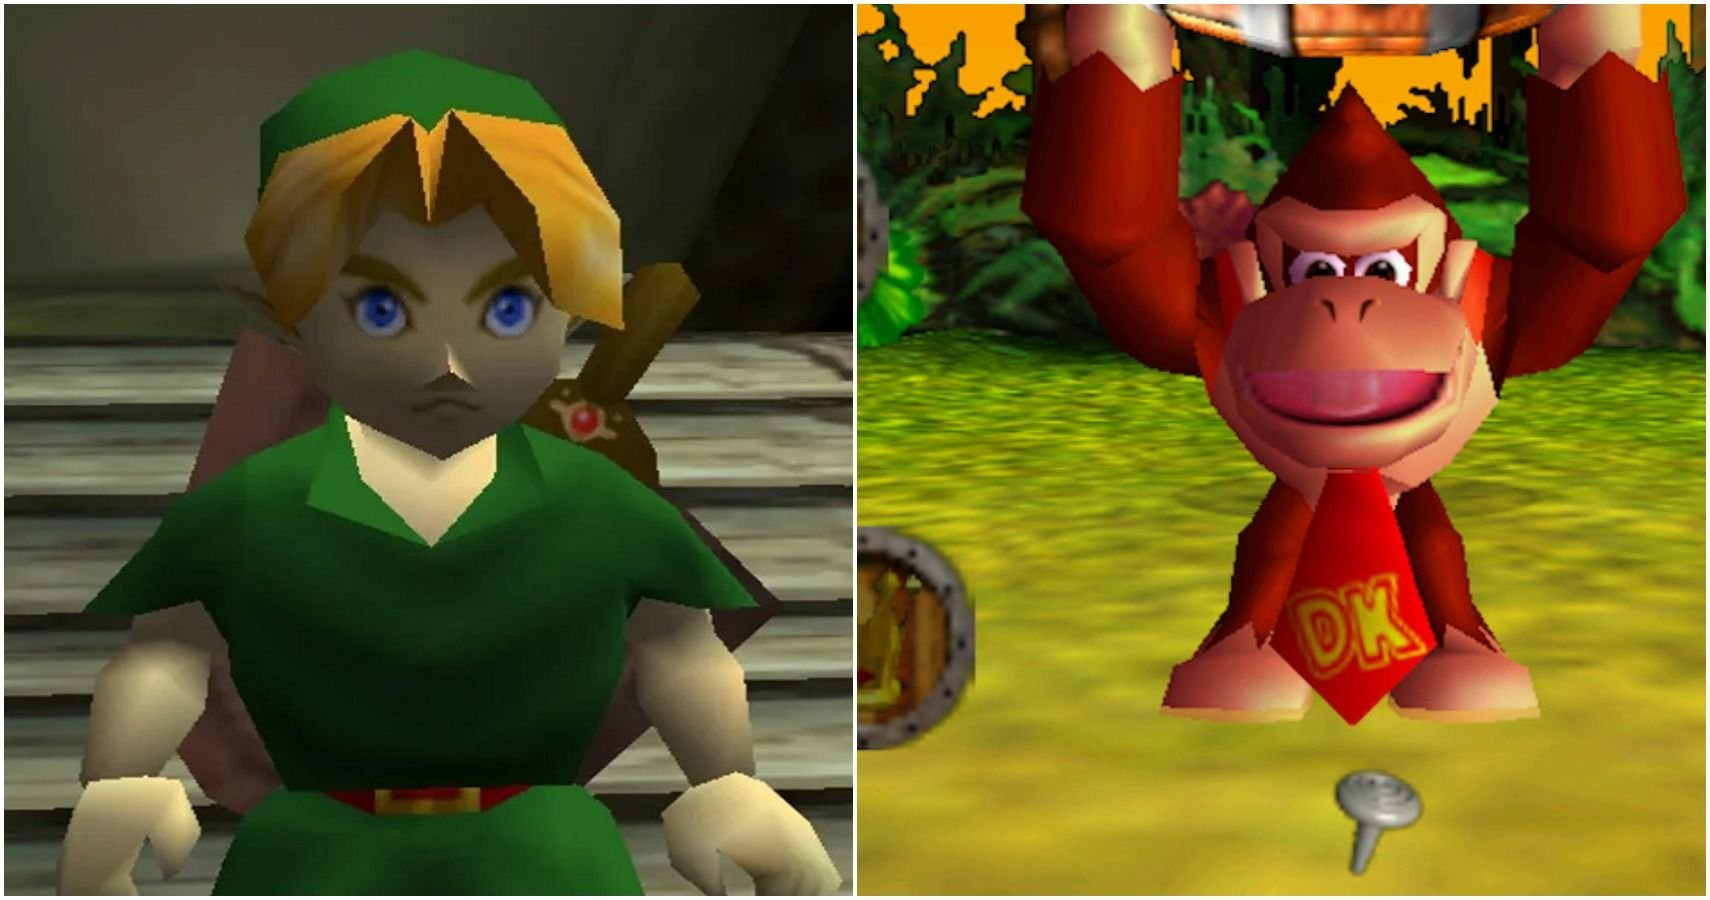 5 N64 Games That Were Way Ahead Of Their Time (& 5 That Were Just Too Generic)